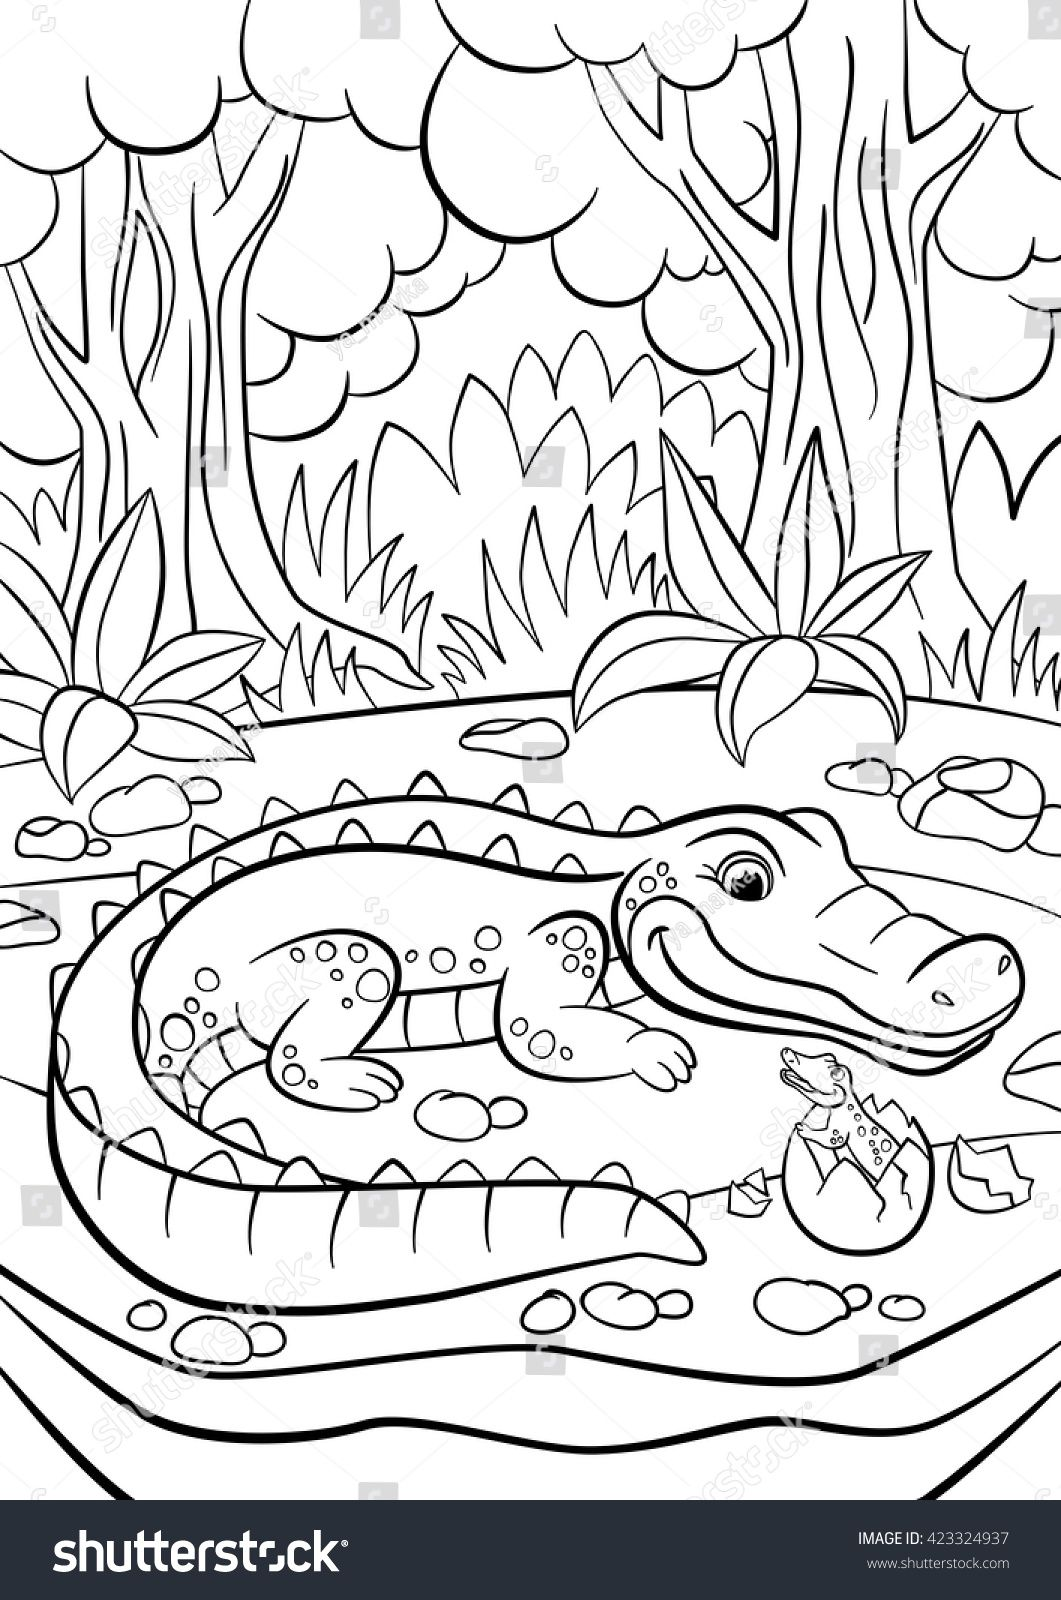 Coloring Pages Animals Mother Alligator Looks At Her Little Cute Baby Alligator In The Egg Ad Animal Coloring Books Coloring Pages Coloring Pages For Kids